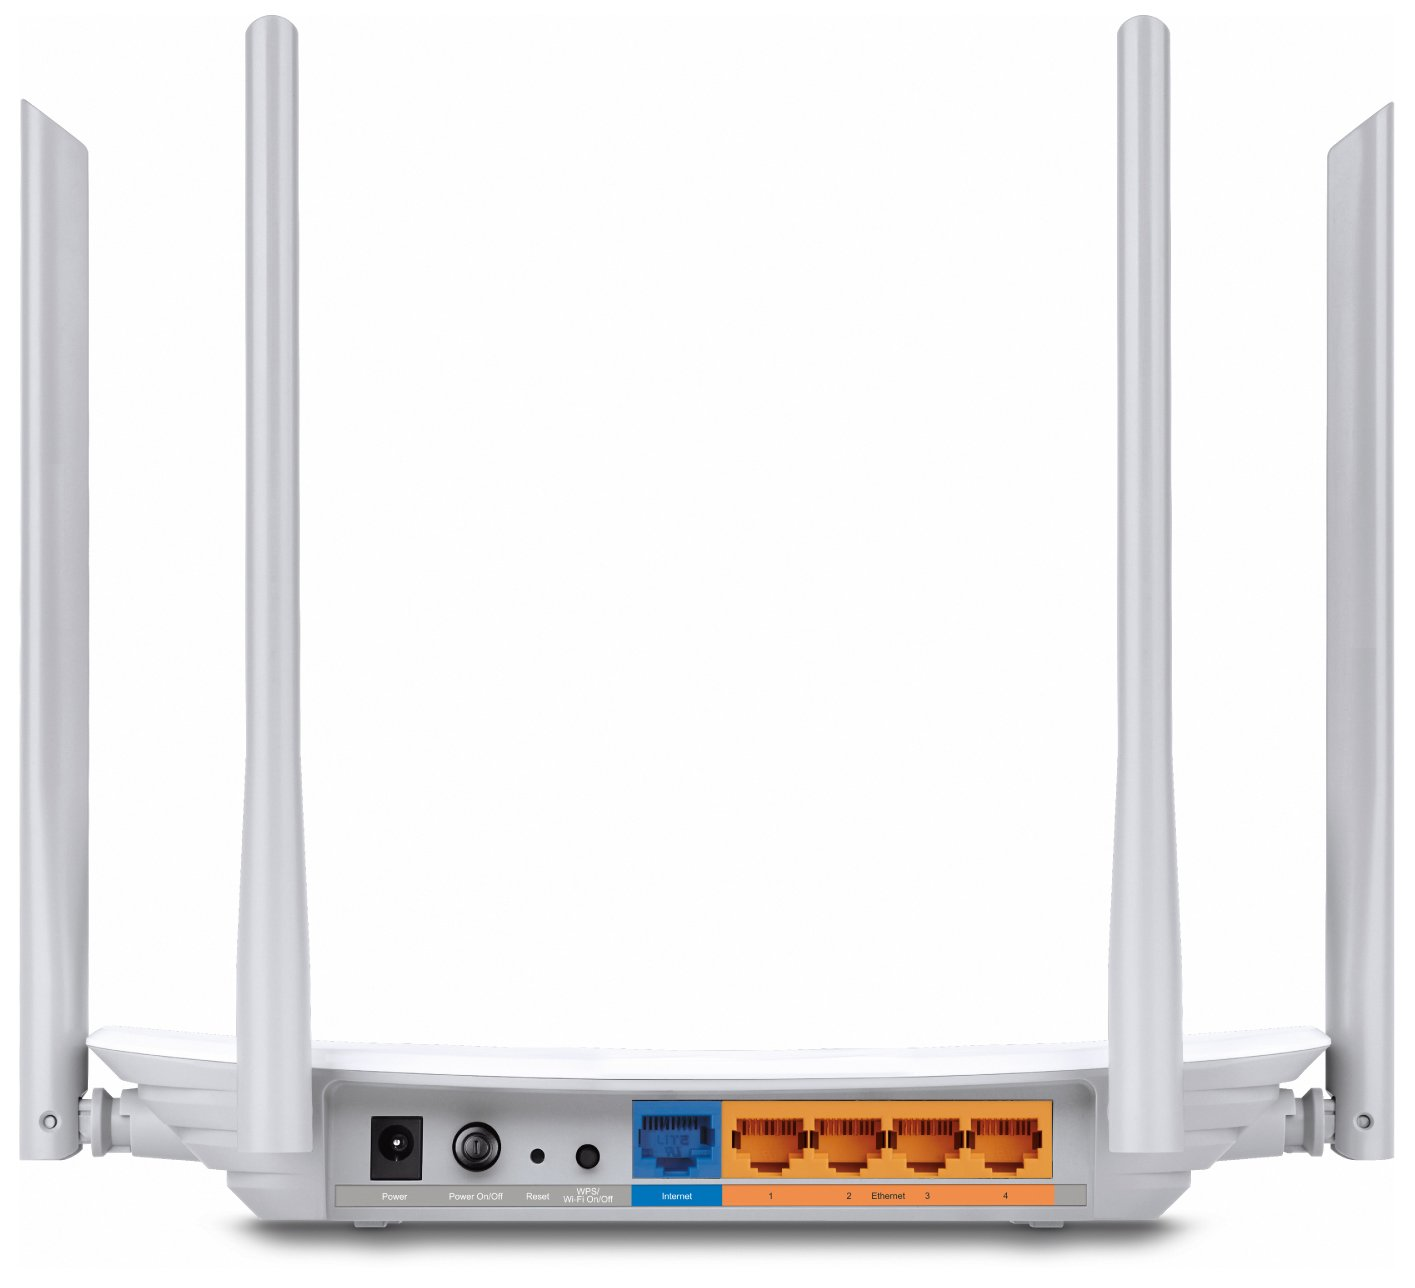 TP-Link Archer C50 AC1200 Dual Band Wireless Cable Wi-Fi Speed Up to 867  Mbps/5 GHz + 300 Mbps/2 4 GHz, Supports Parental Control, Guest Wi-Fi, VPN